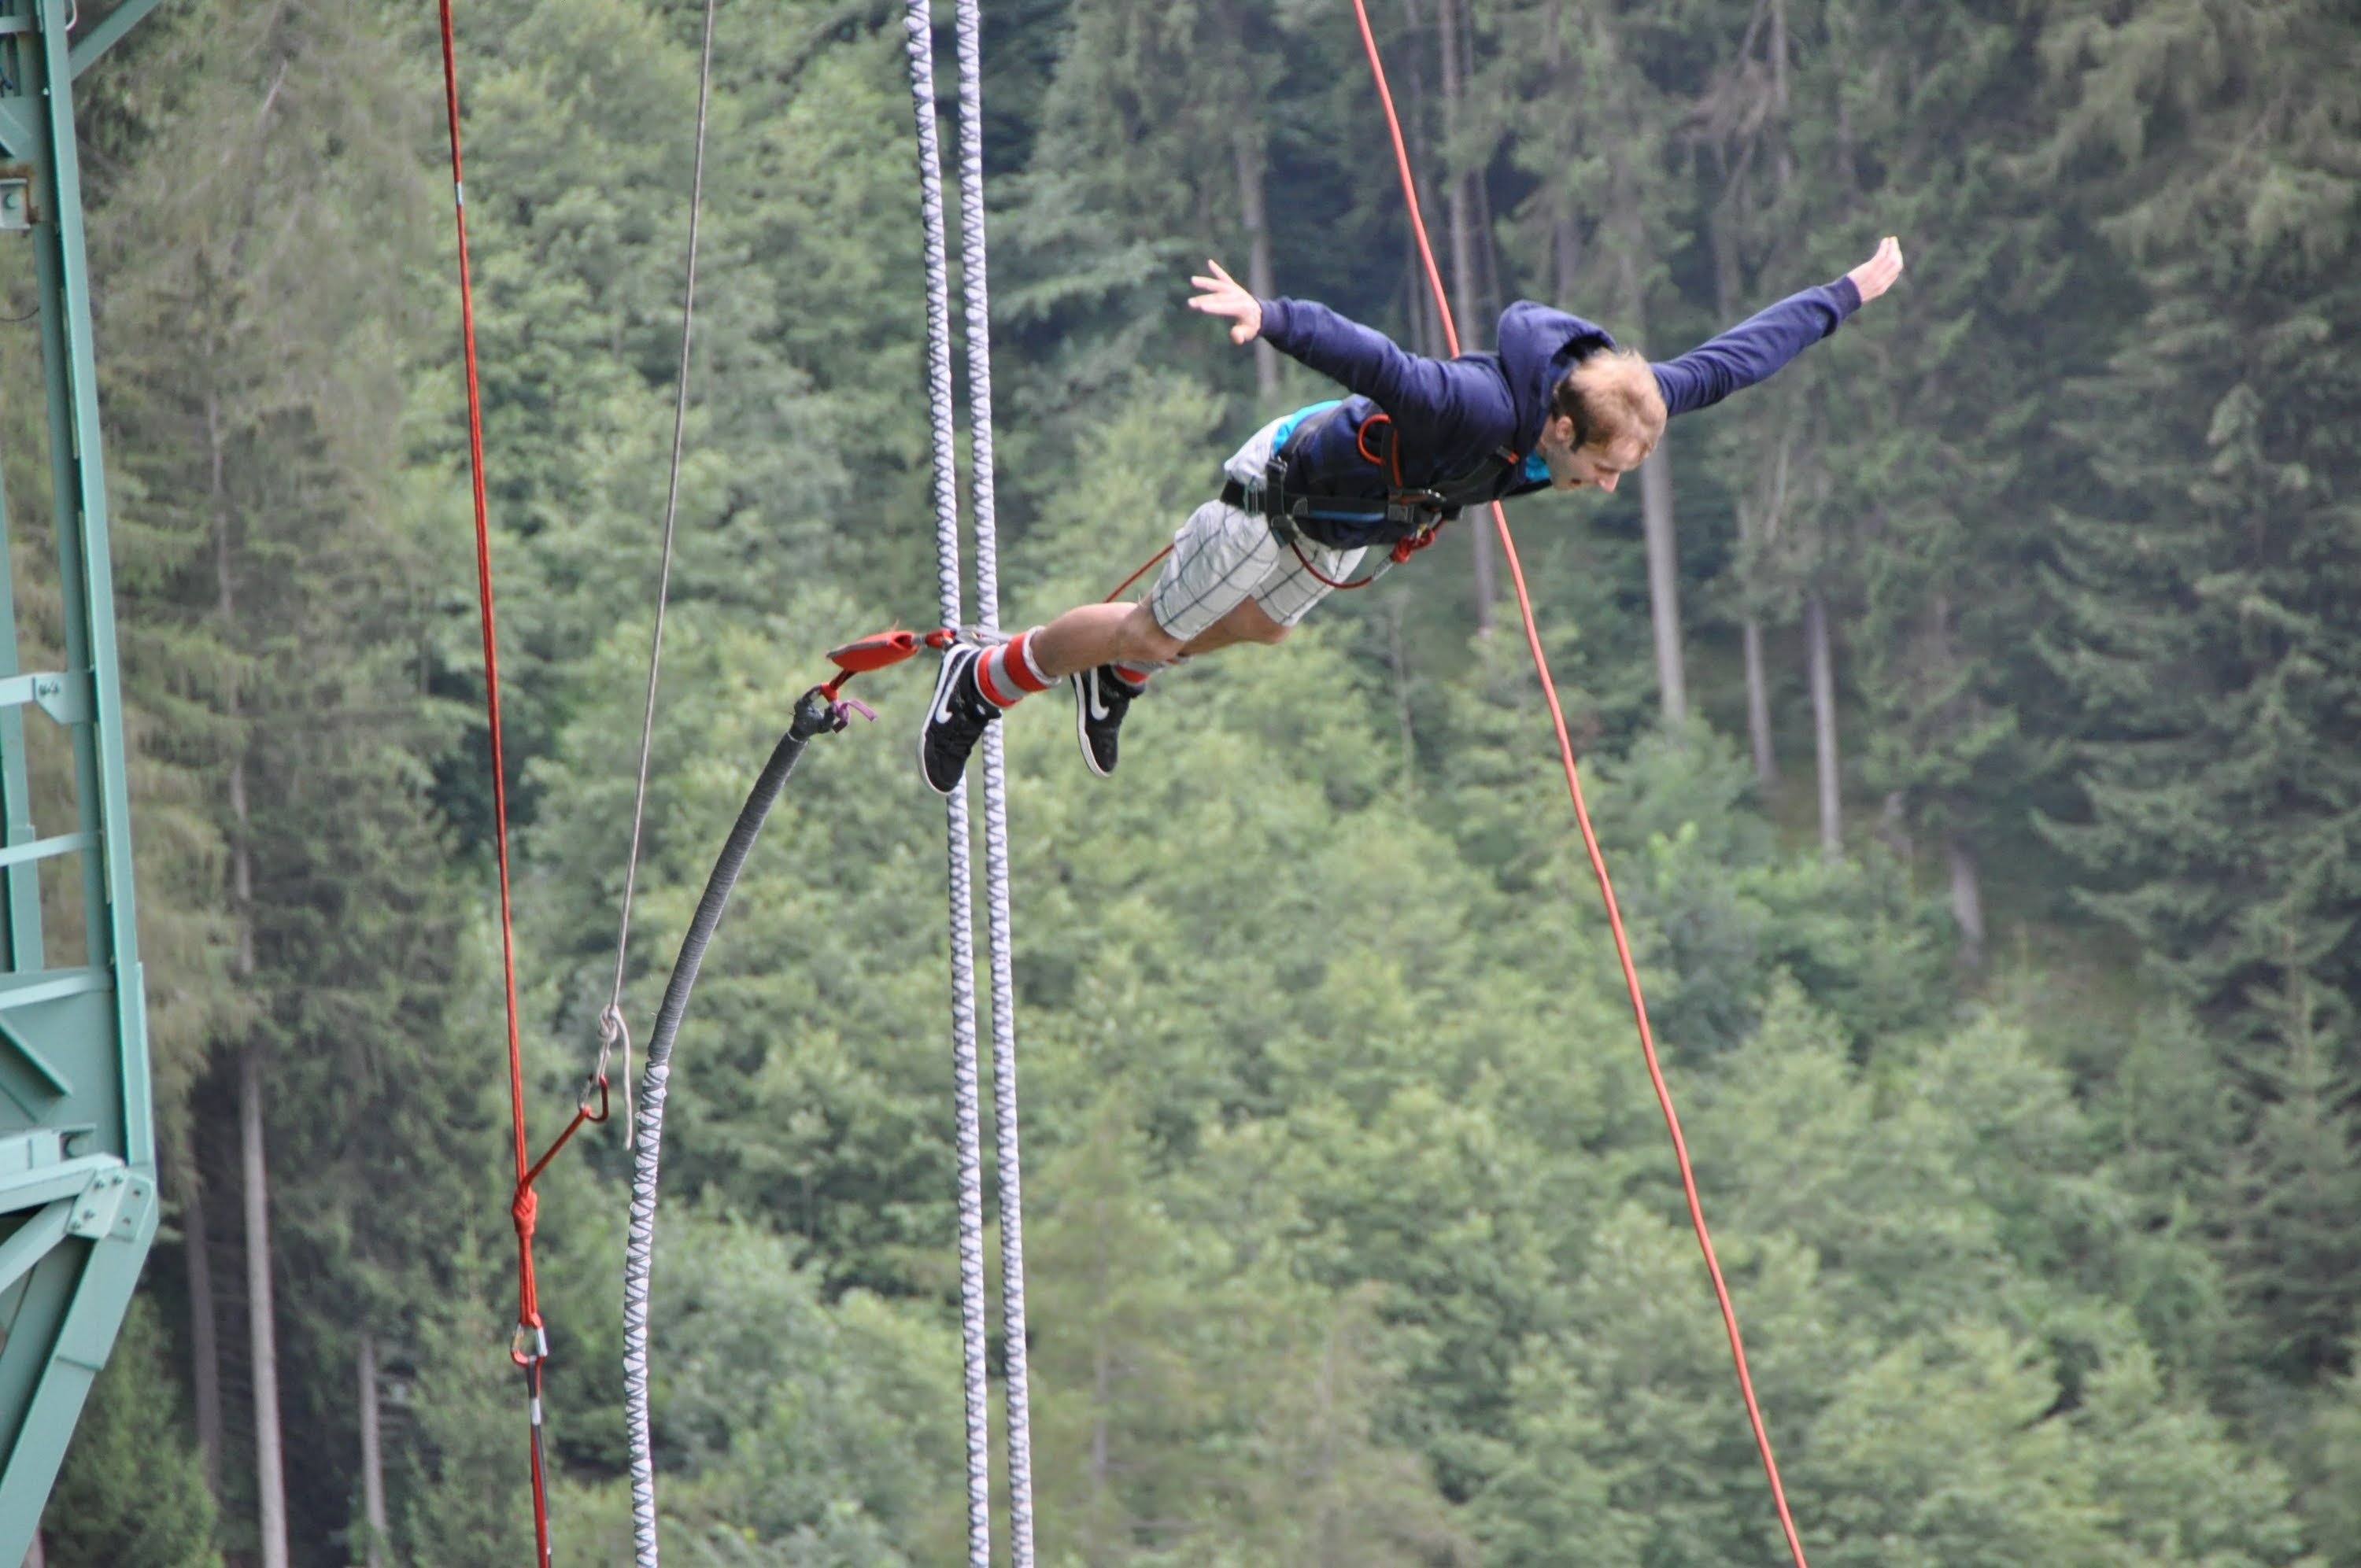 Top Highest Bungee Jumps In The World - Take the plunge 8 best places in the world to bungee jump